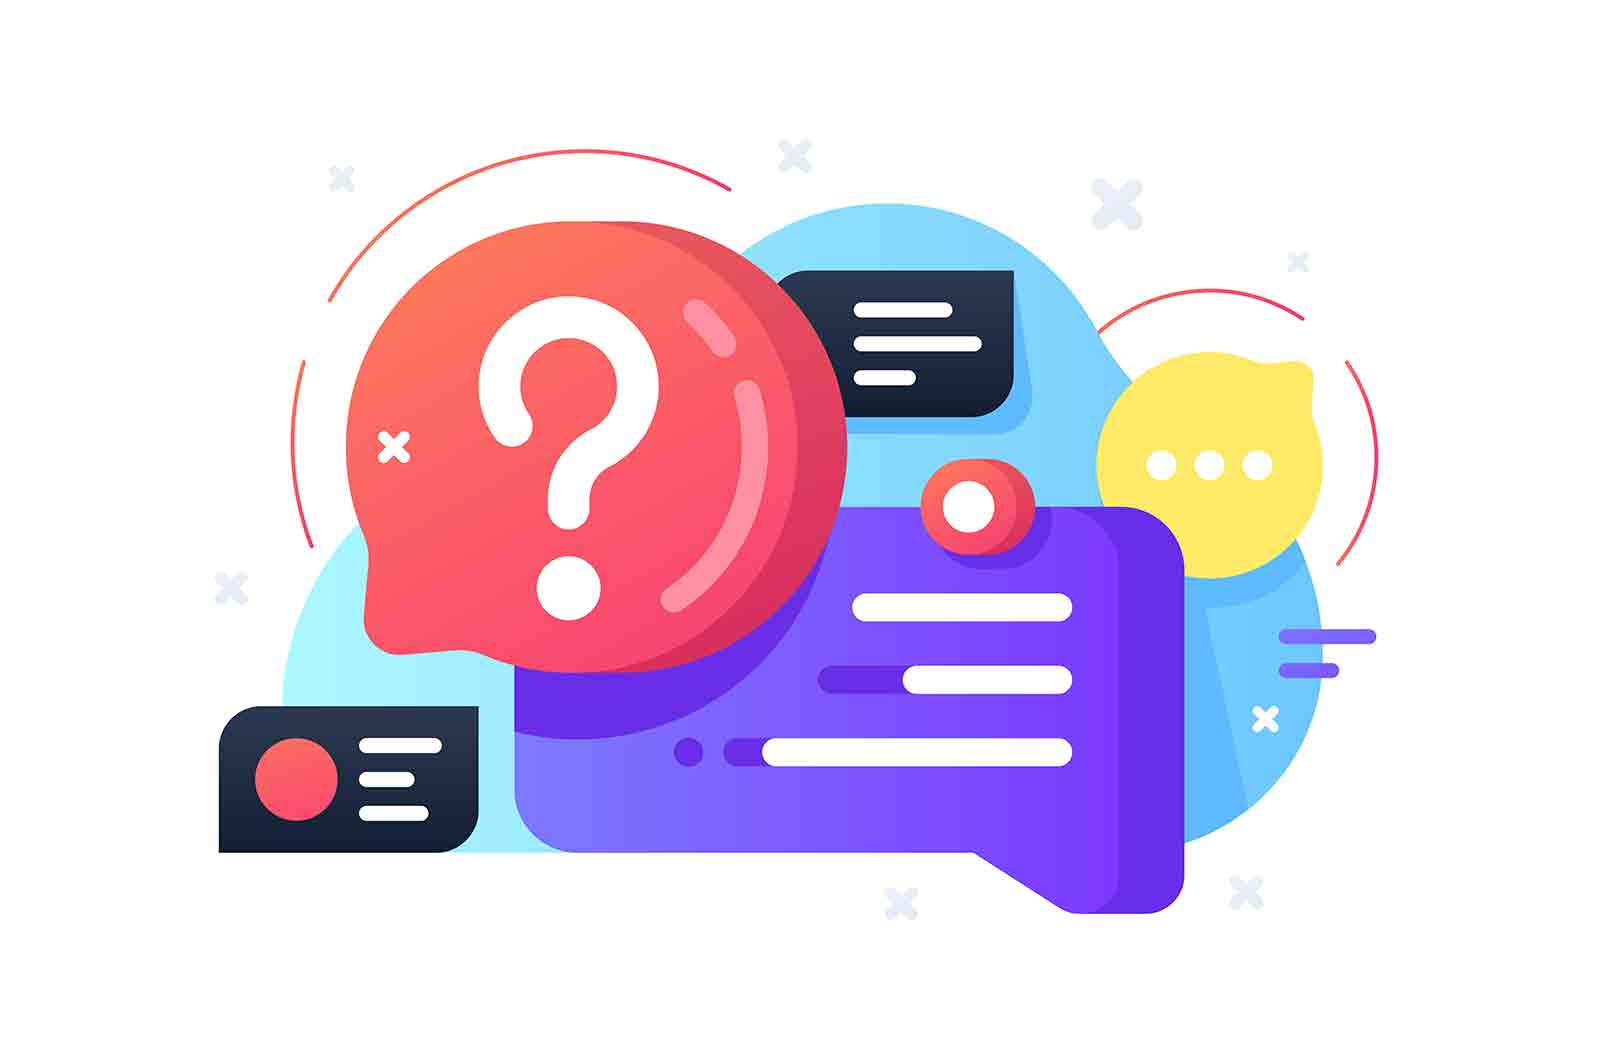 Question and answer vector illustration. Colourful bubbles with text and question mark flat style. Communication and conversation concept.